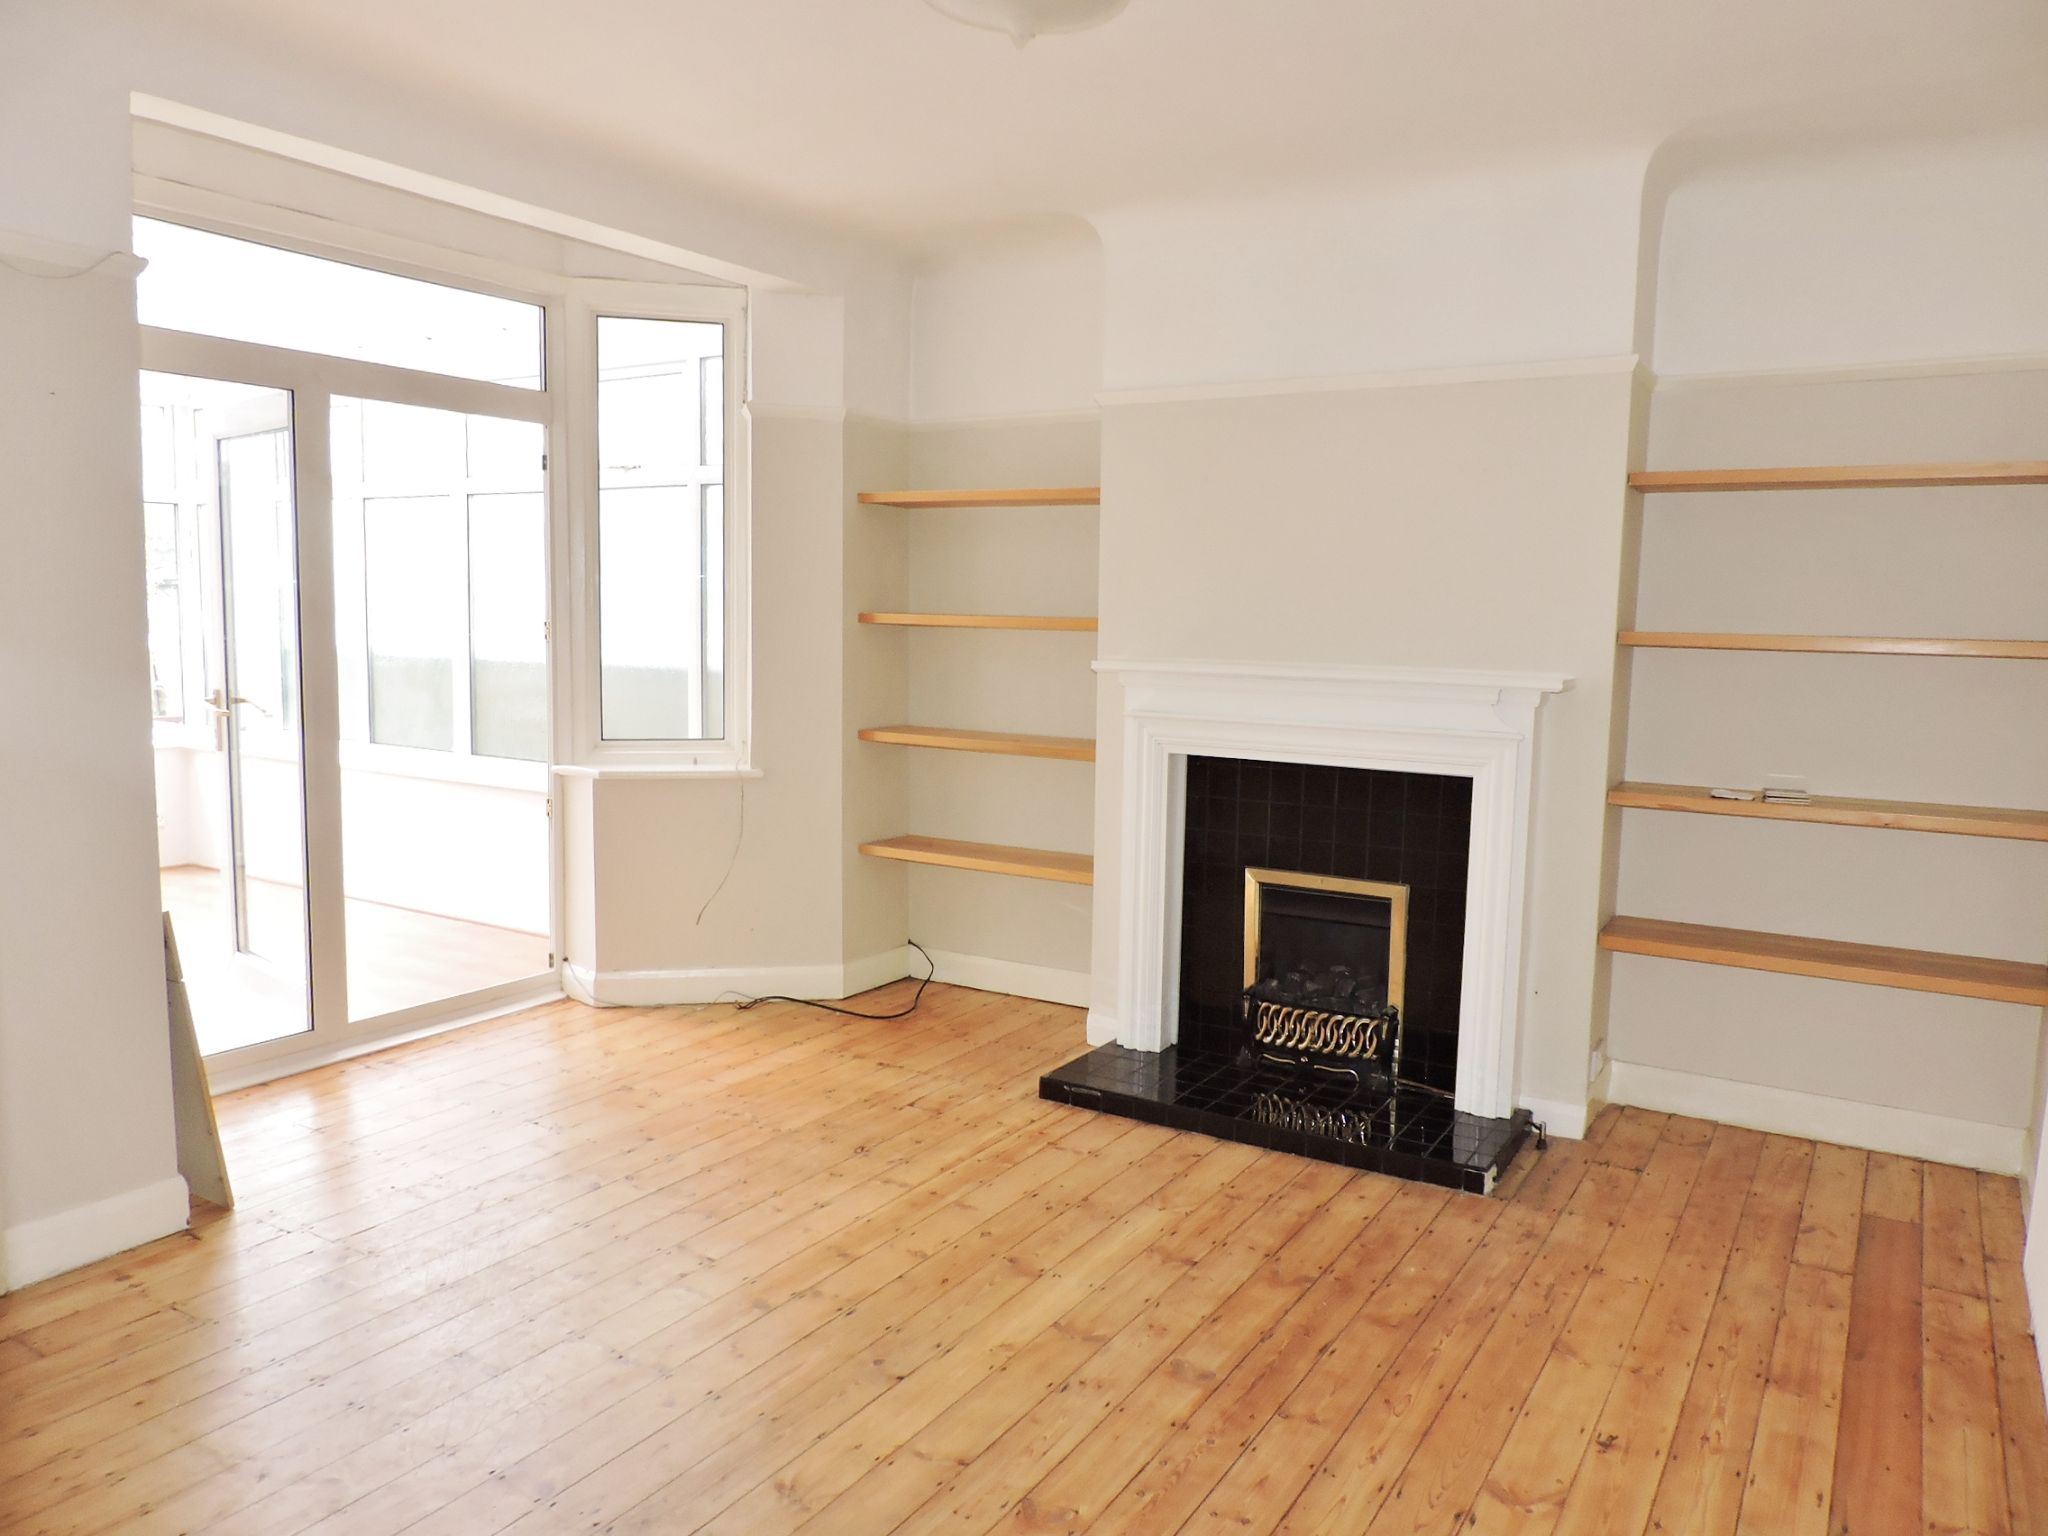 1 bedroom maisonette flat/apartment For Sale in London - Property photograph